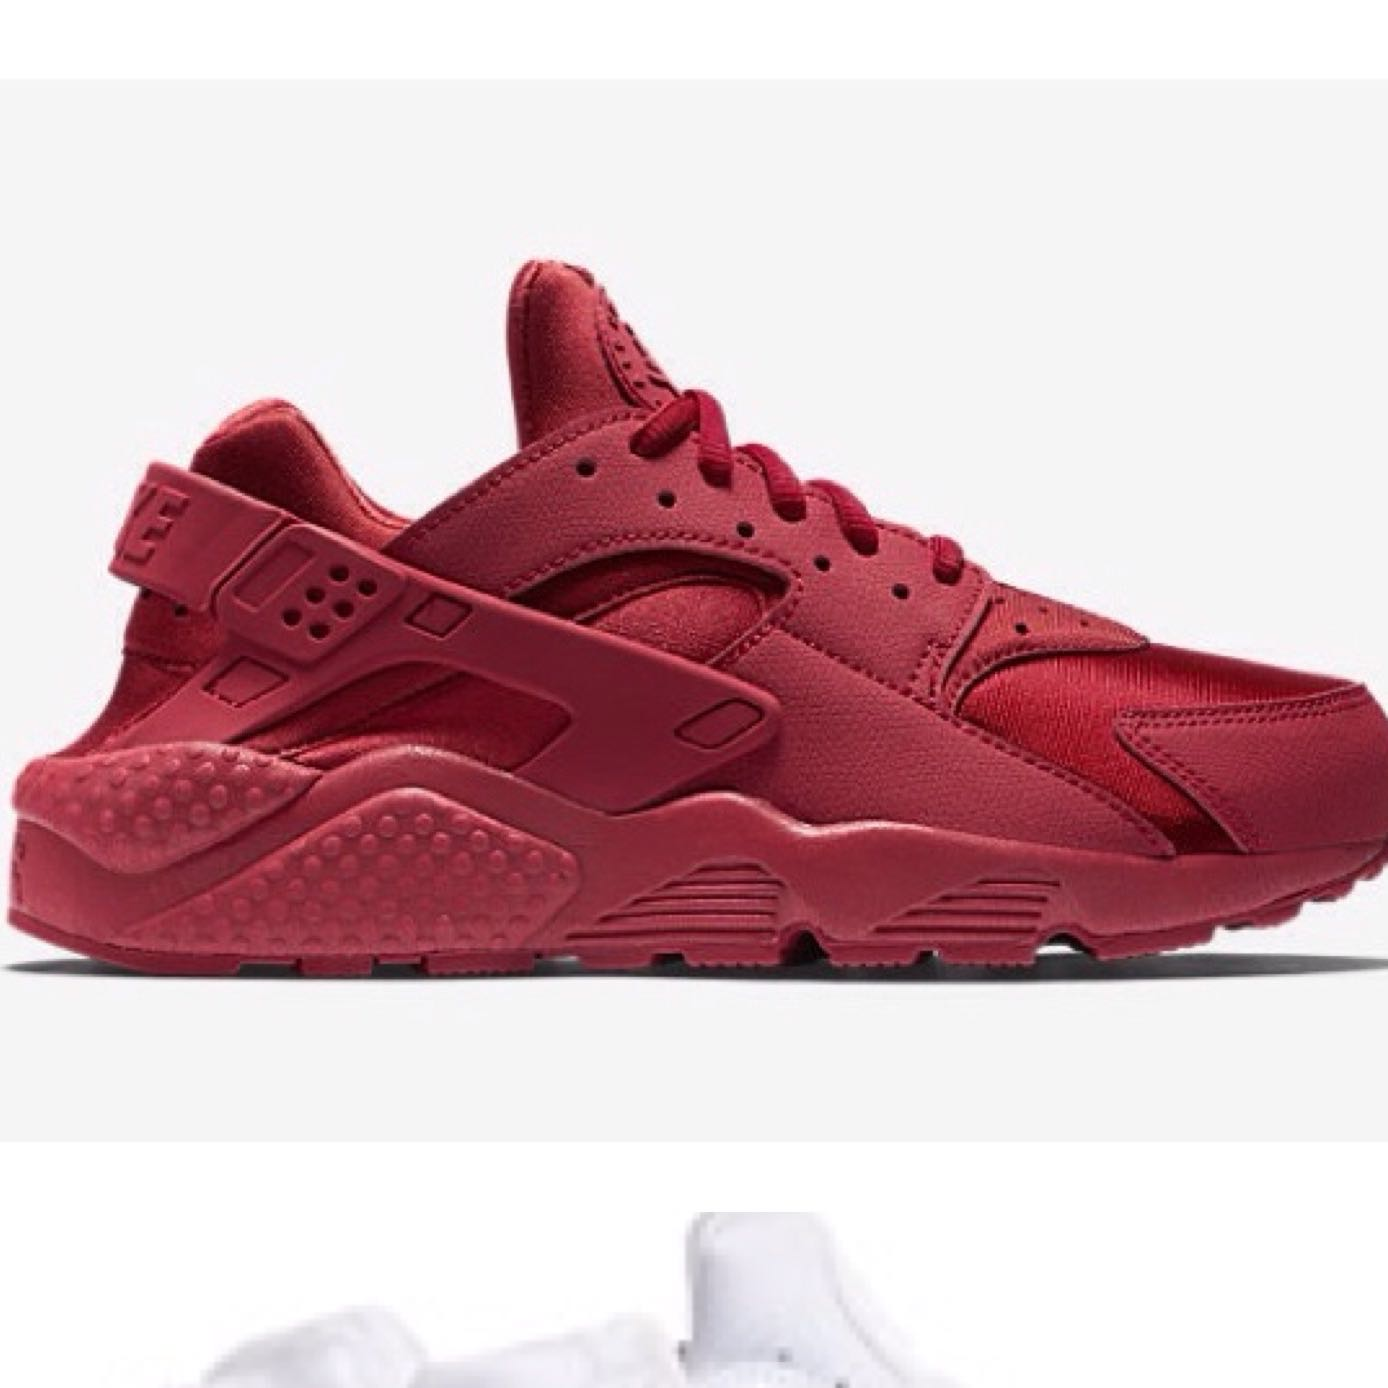 wo krieg ich diese schuhe her nike huarache rot. Black Bedroom Furniture Sets. Home Design Ideas